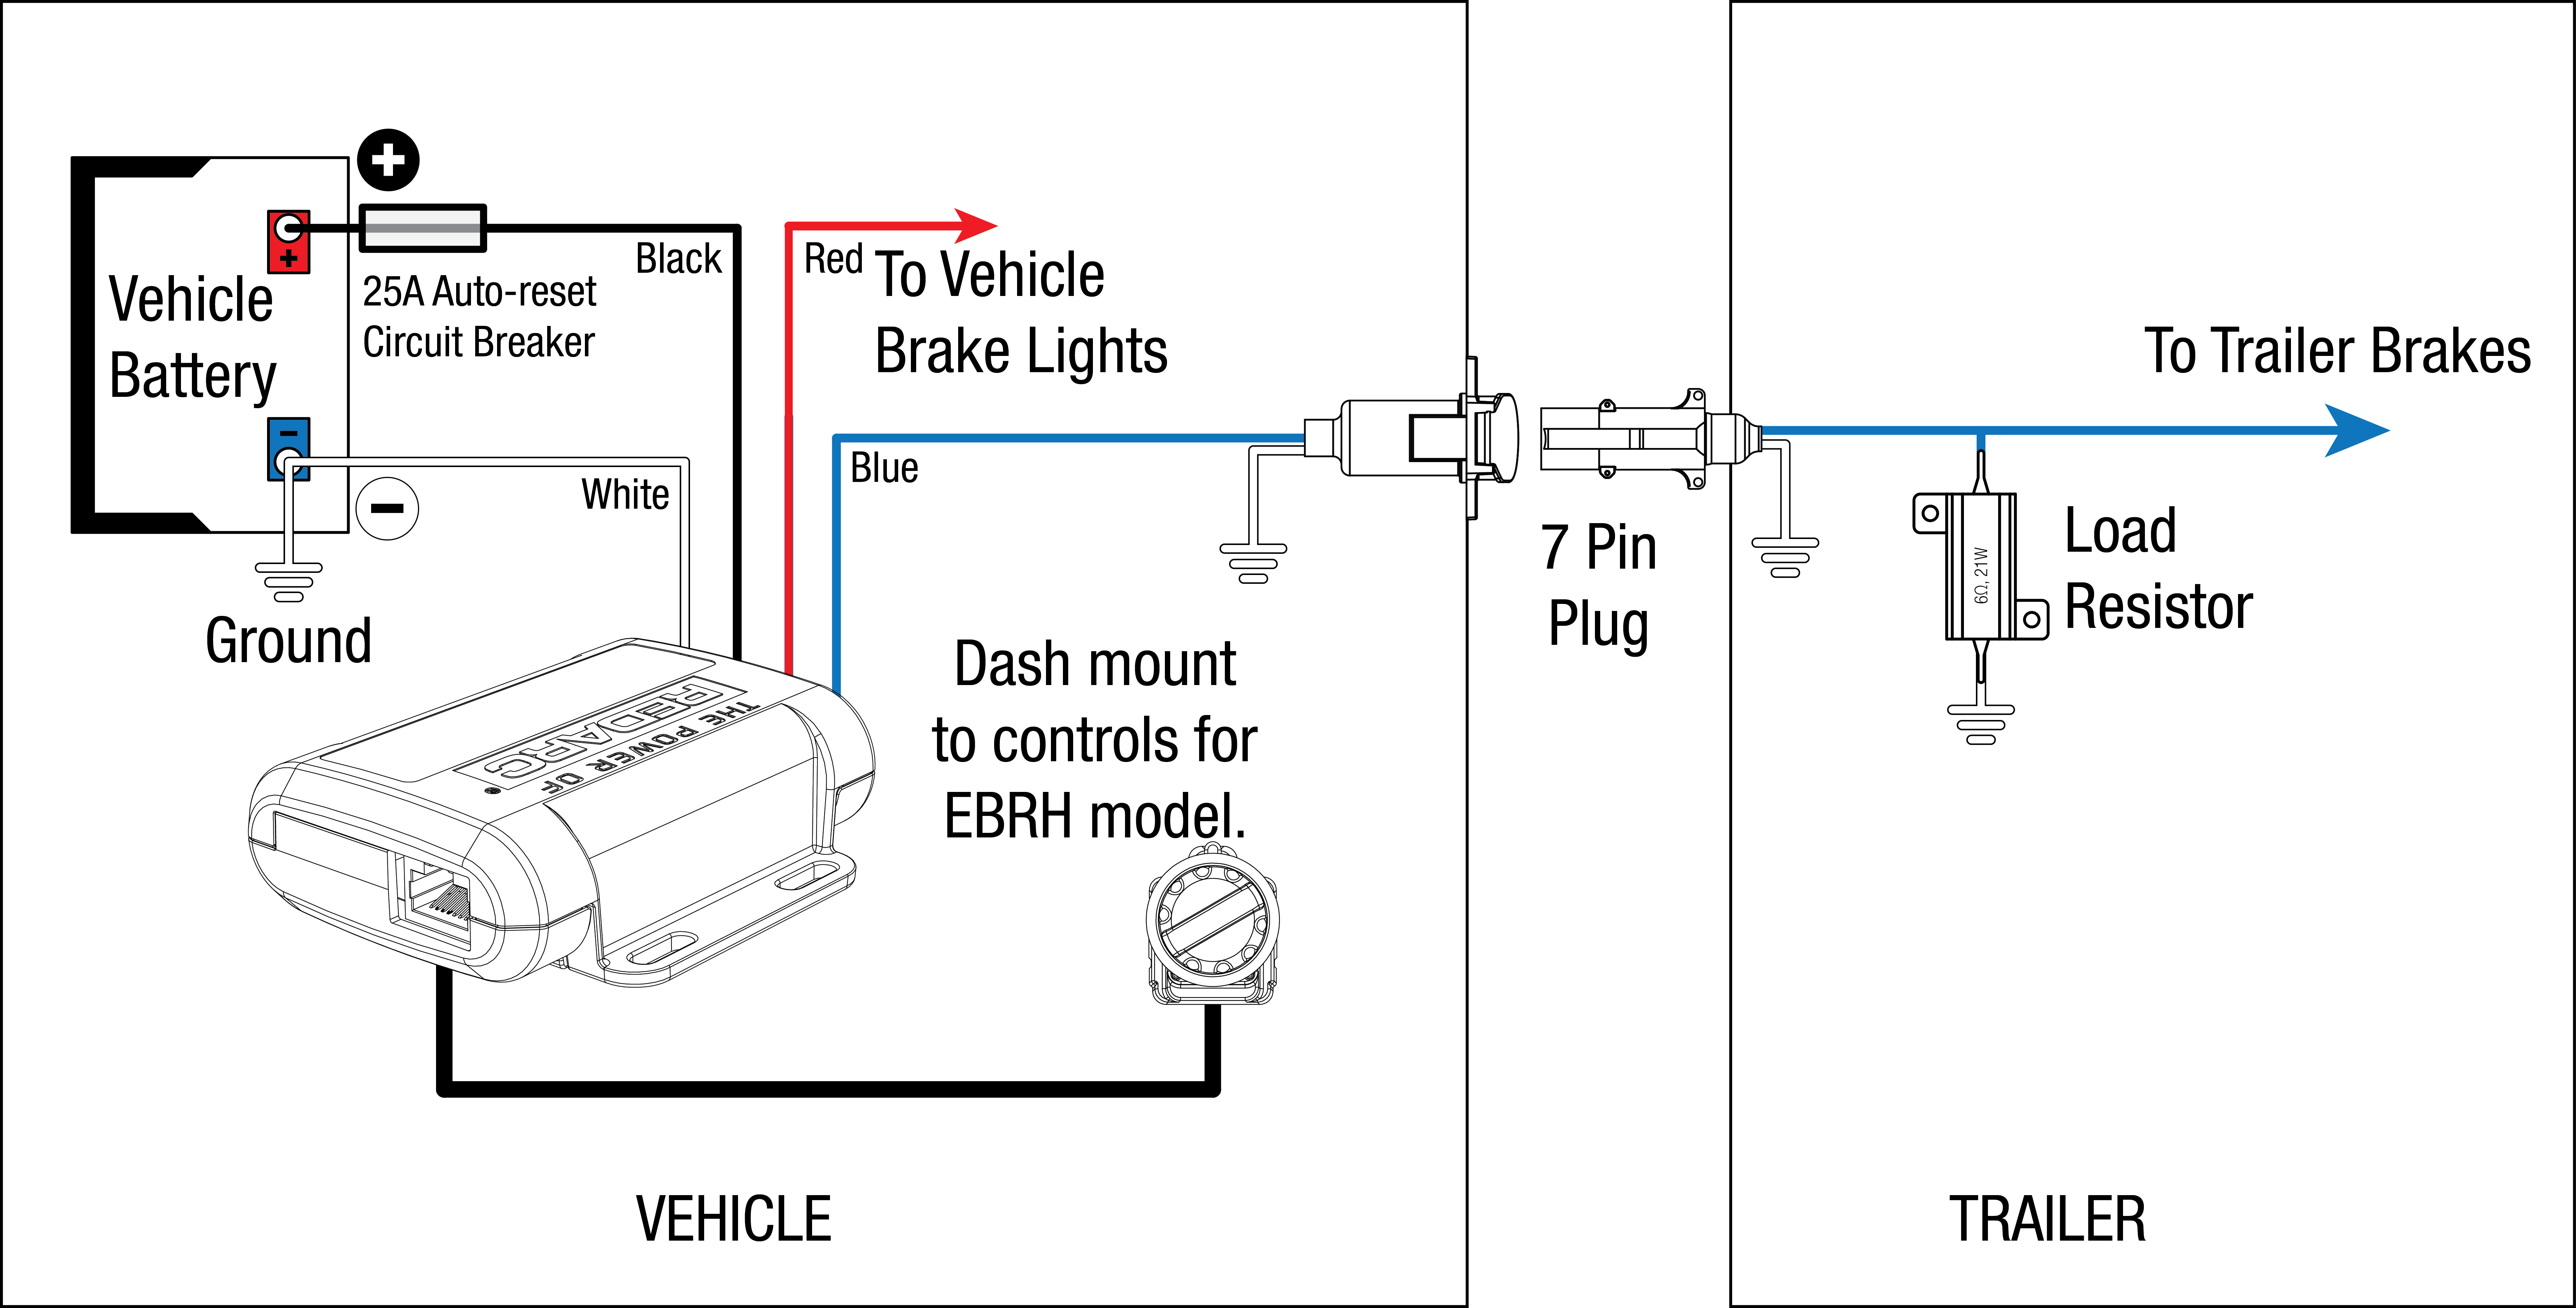 Tow-Pro Electric/hydraulic Braking Systems | Redarc Electronics - Wiring Diagram For Trailer Lights And Electric Brakes